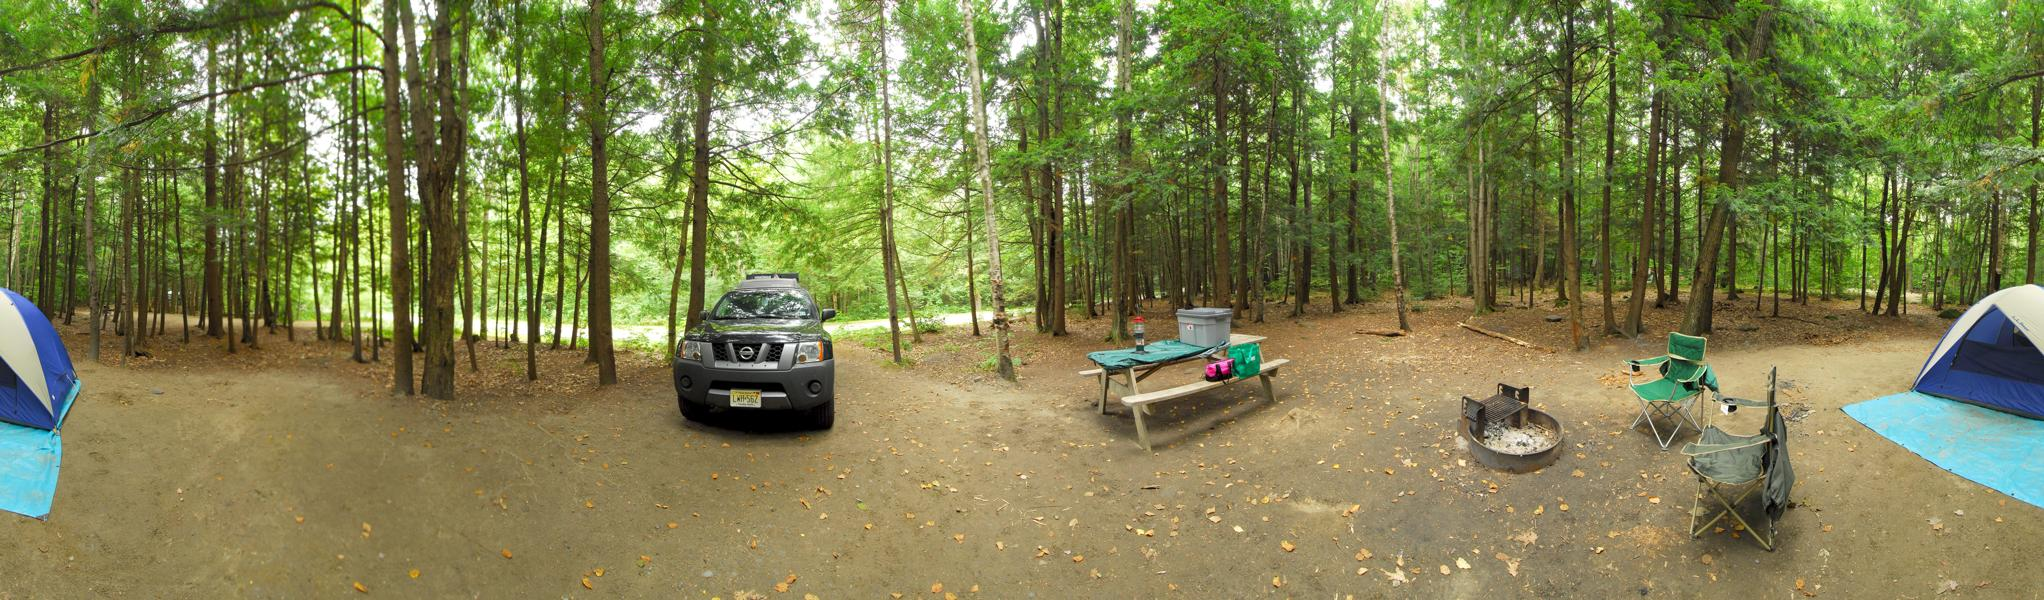 XTerra, firering, panoramic